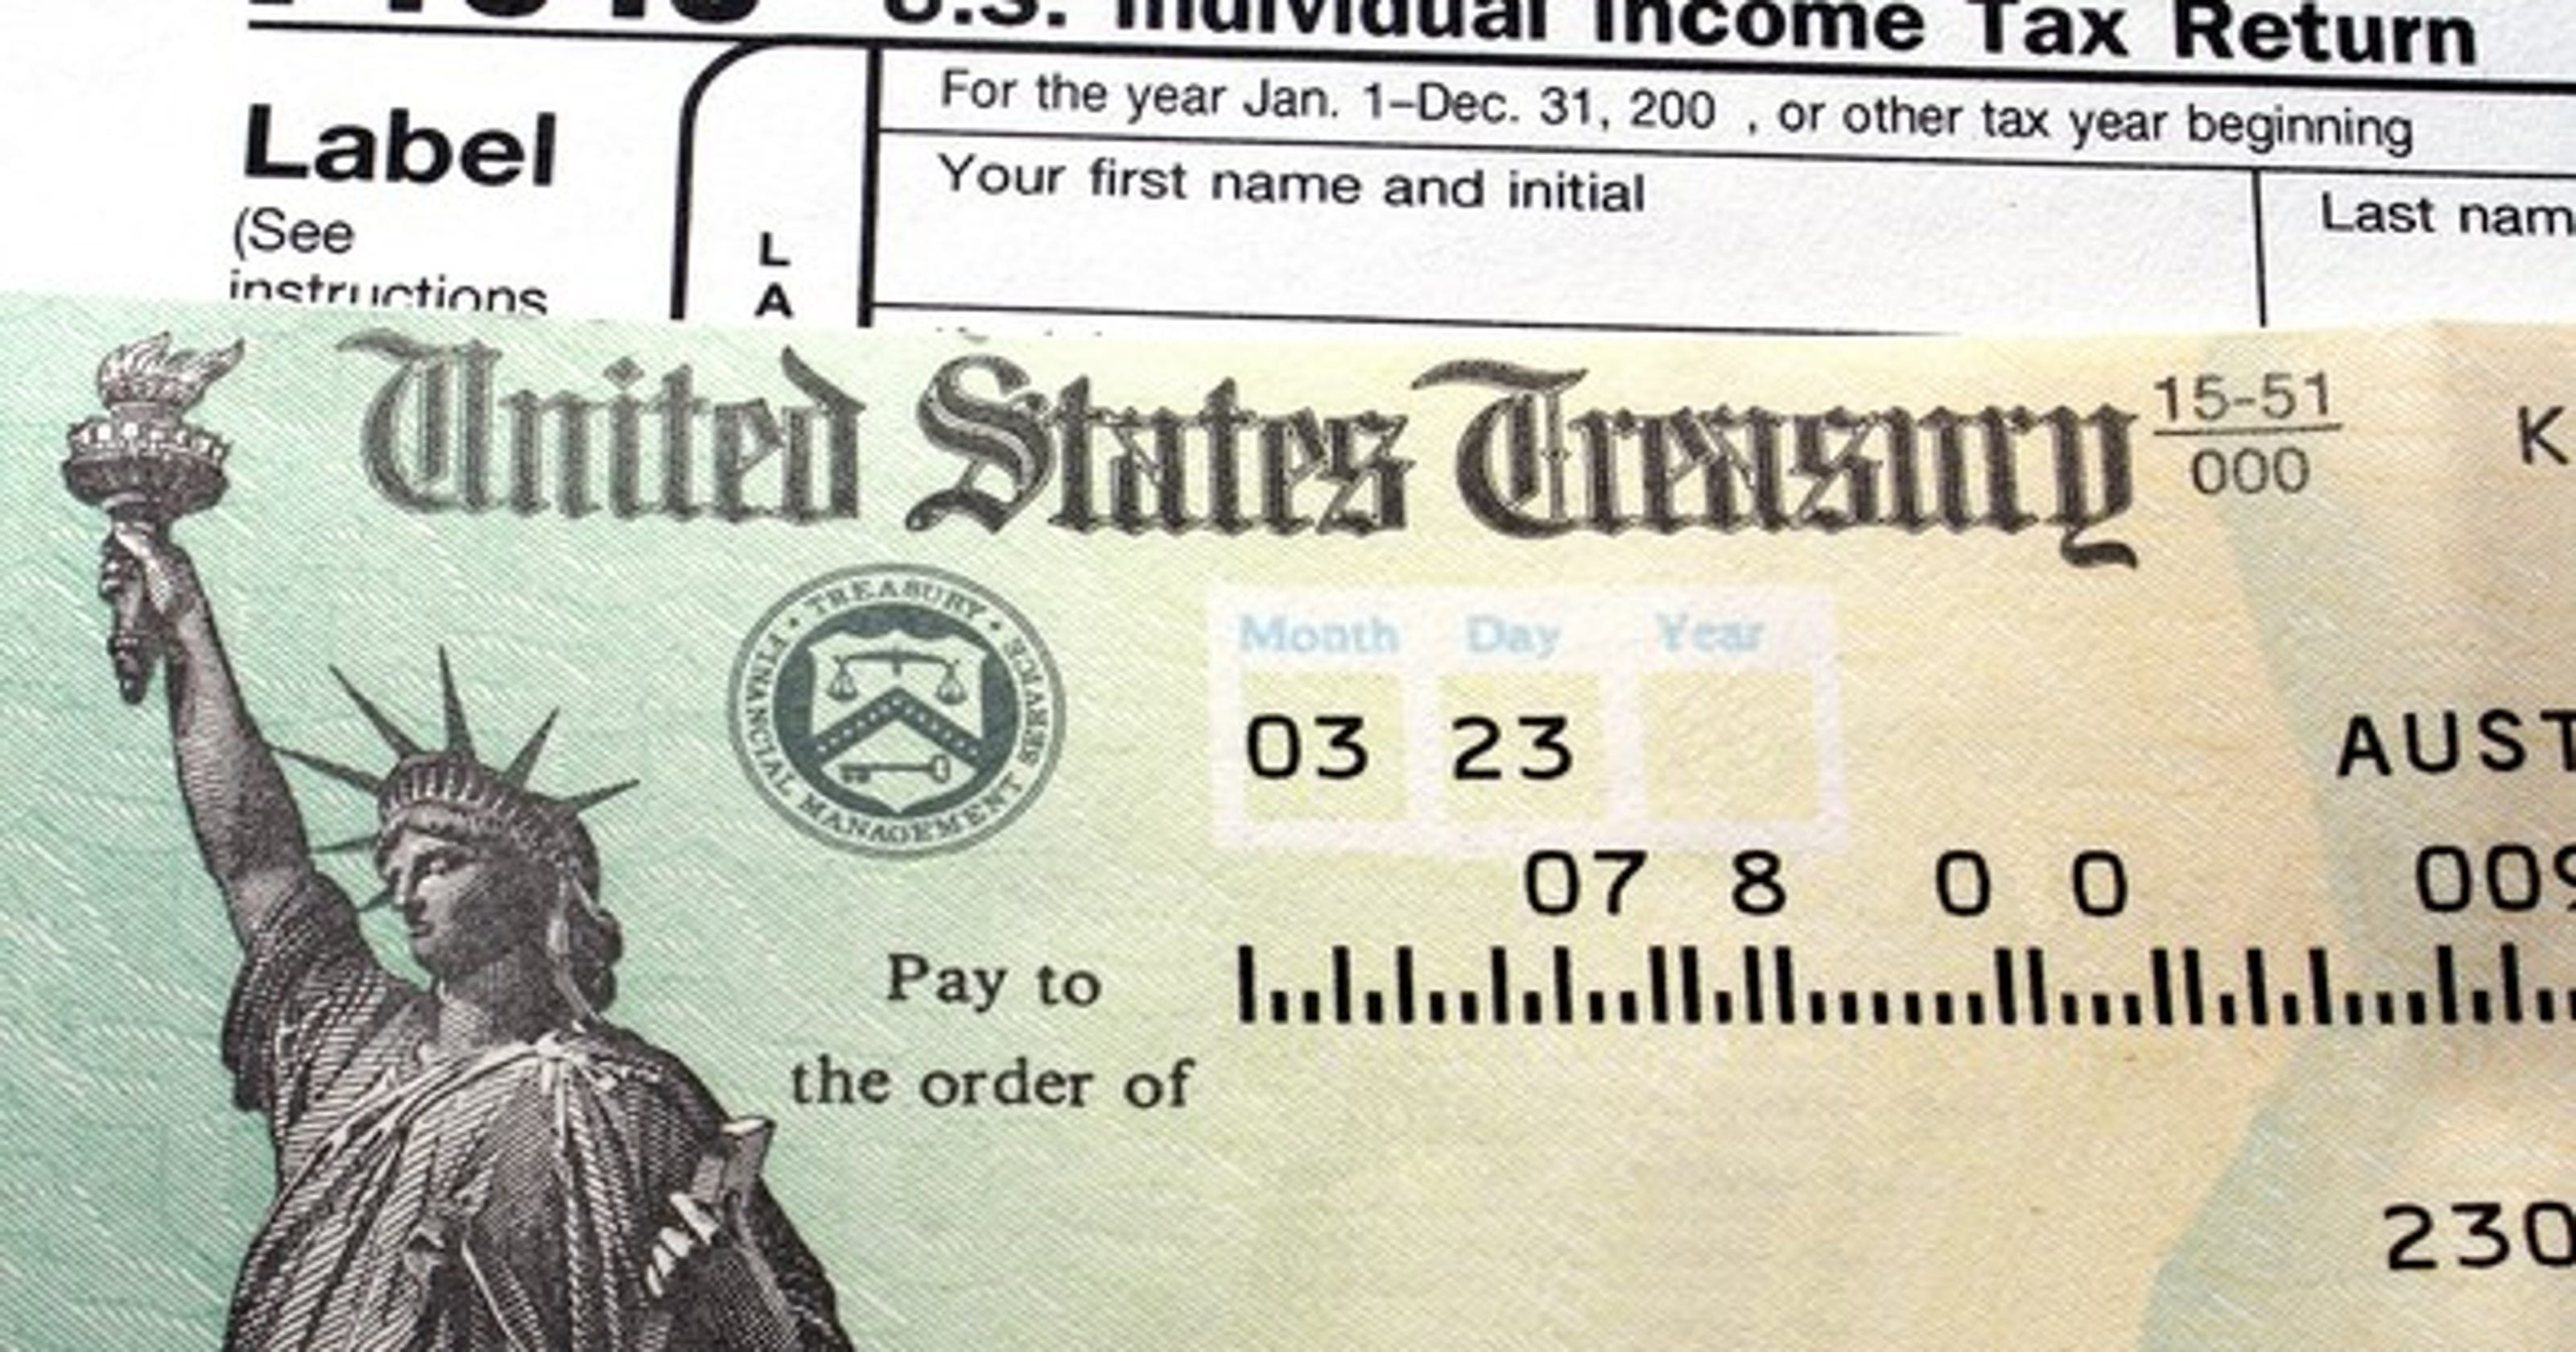 Still waiting? Reasons why you haven't received your tax refund yet